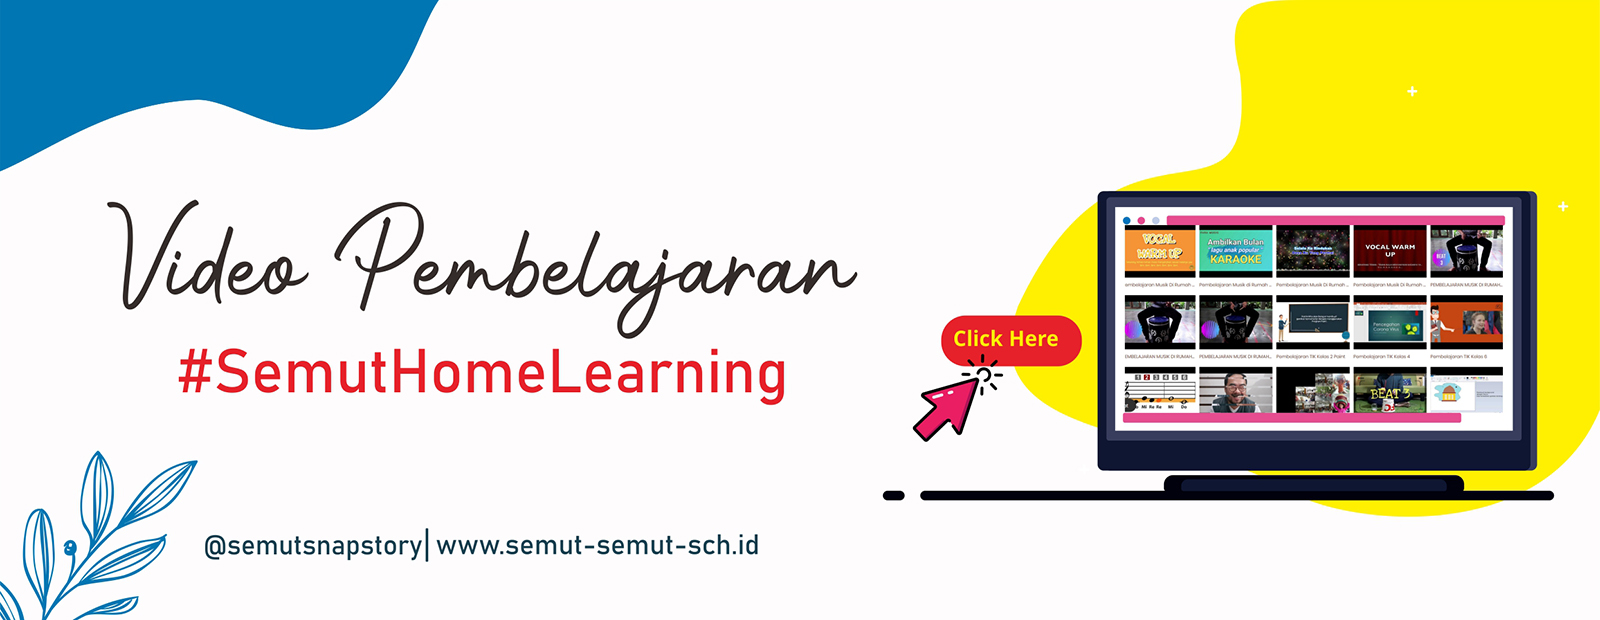 Video Pembelajaran SD Semut-Semut the Natural School